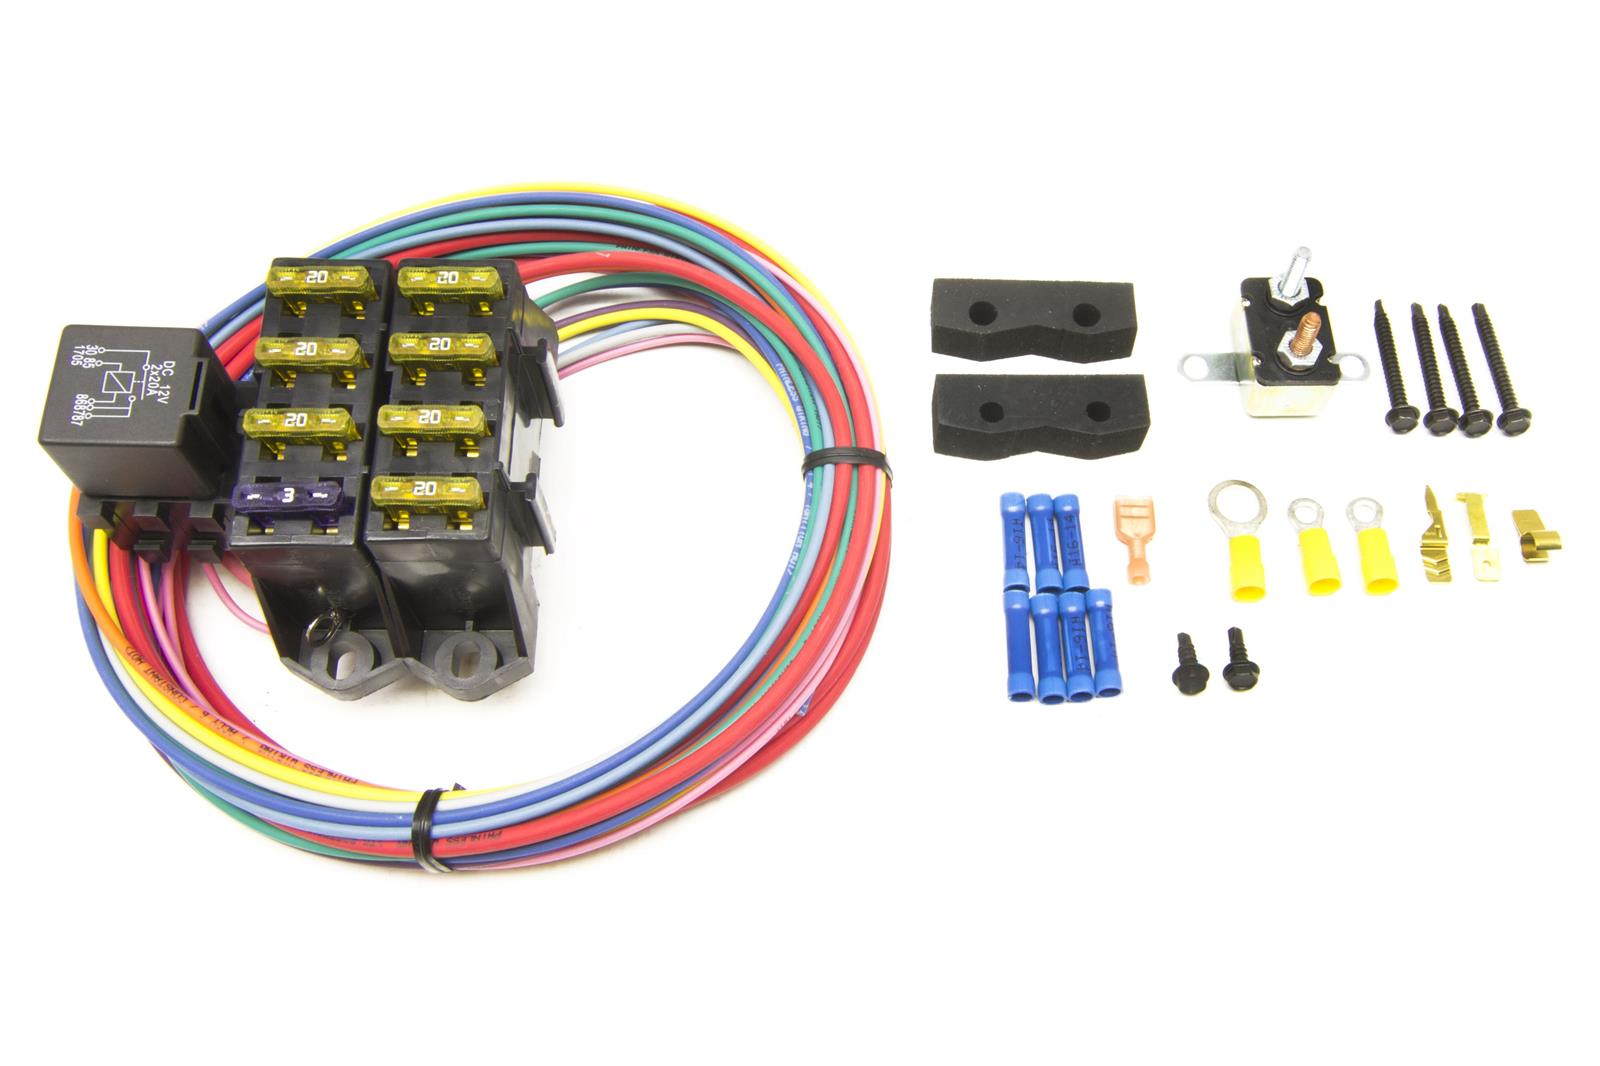 painless performance 70107 painless performance cirkit boss auxiliary fuse  block/7-circuit kits (3 constant/4 ignition 12 v) | summit racing  summit racing